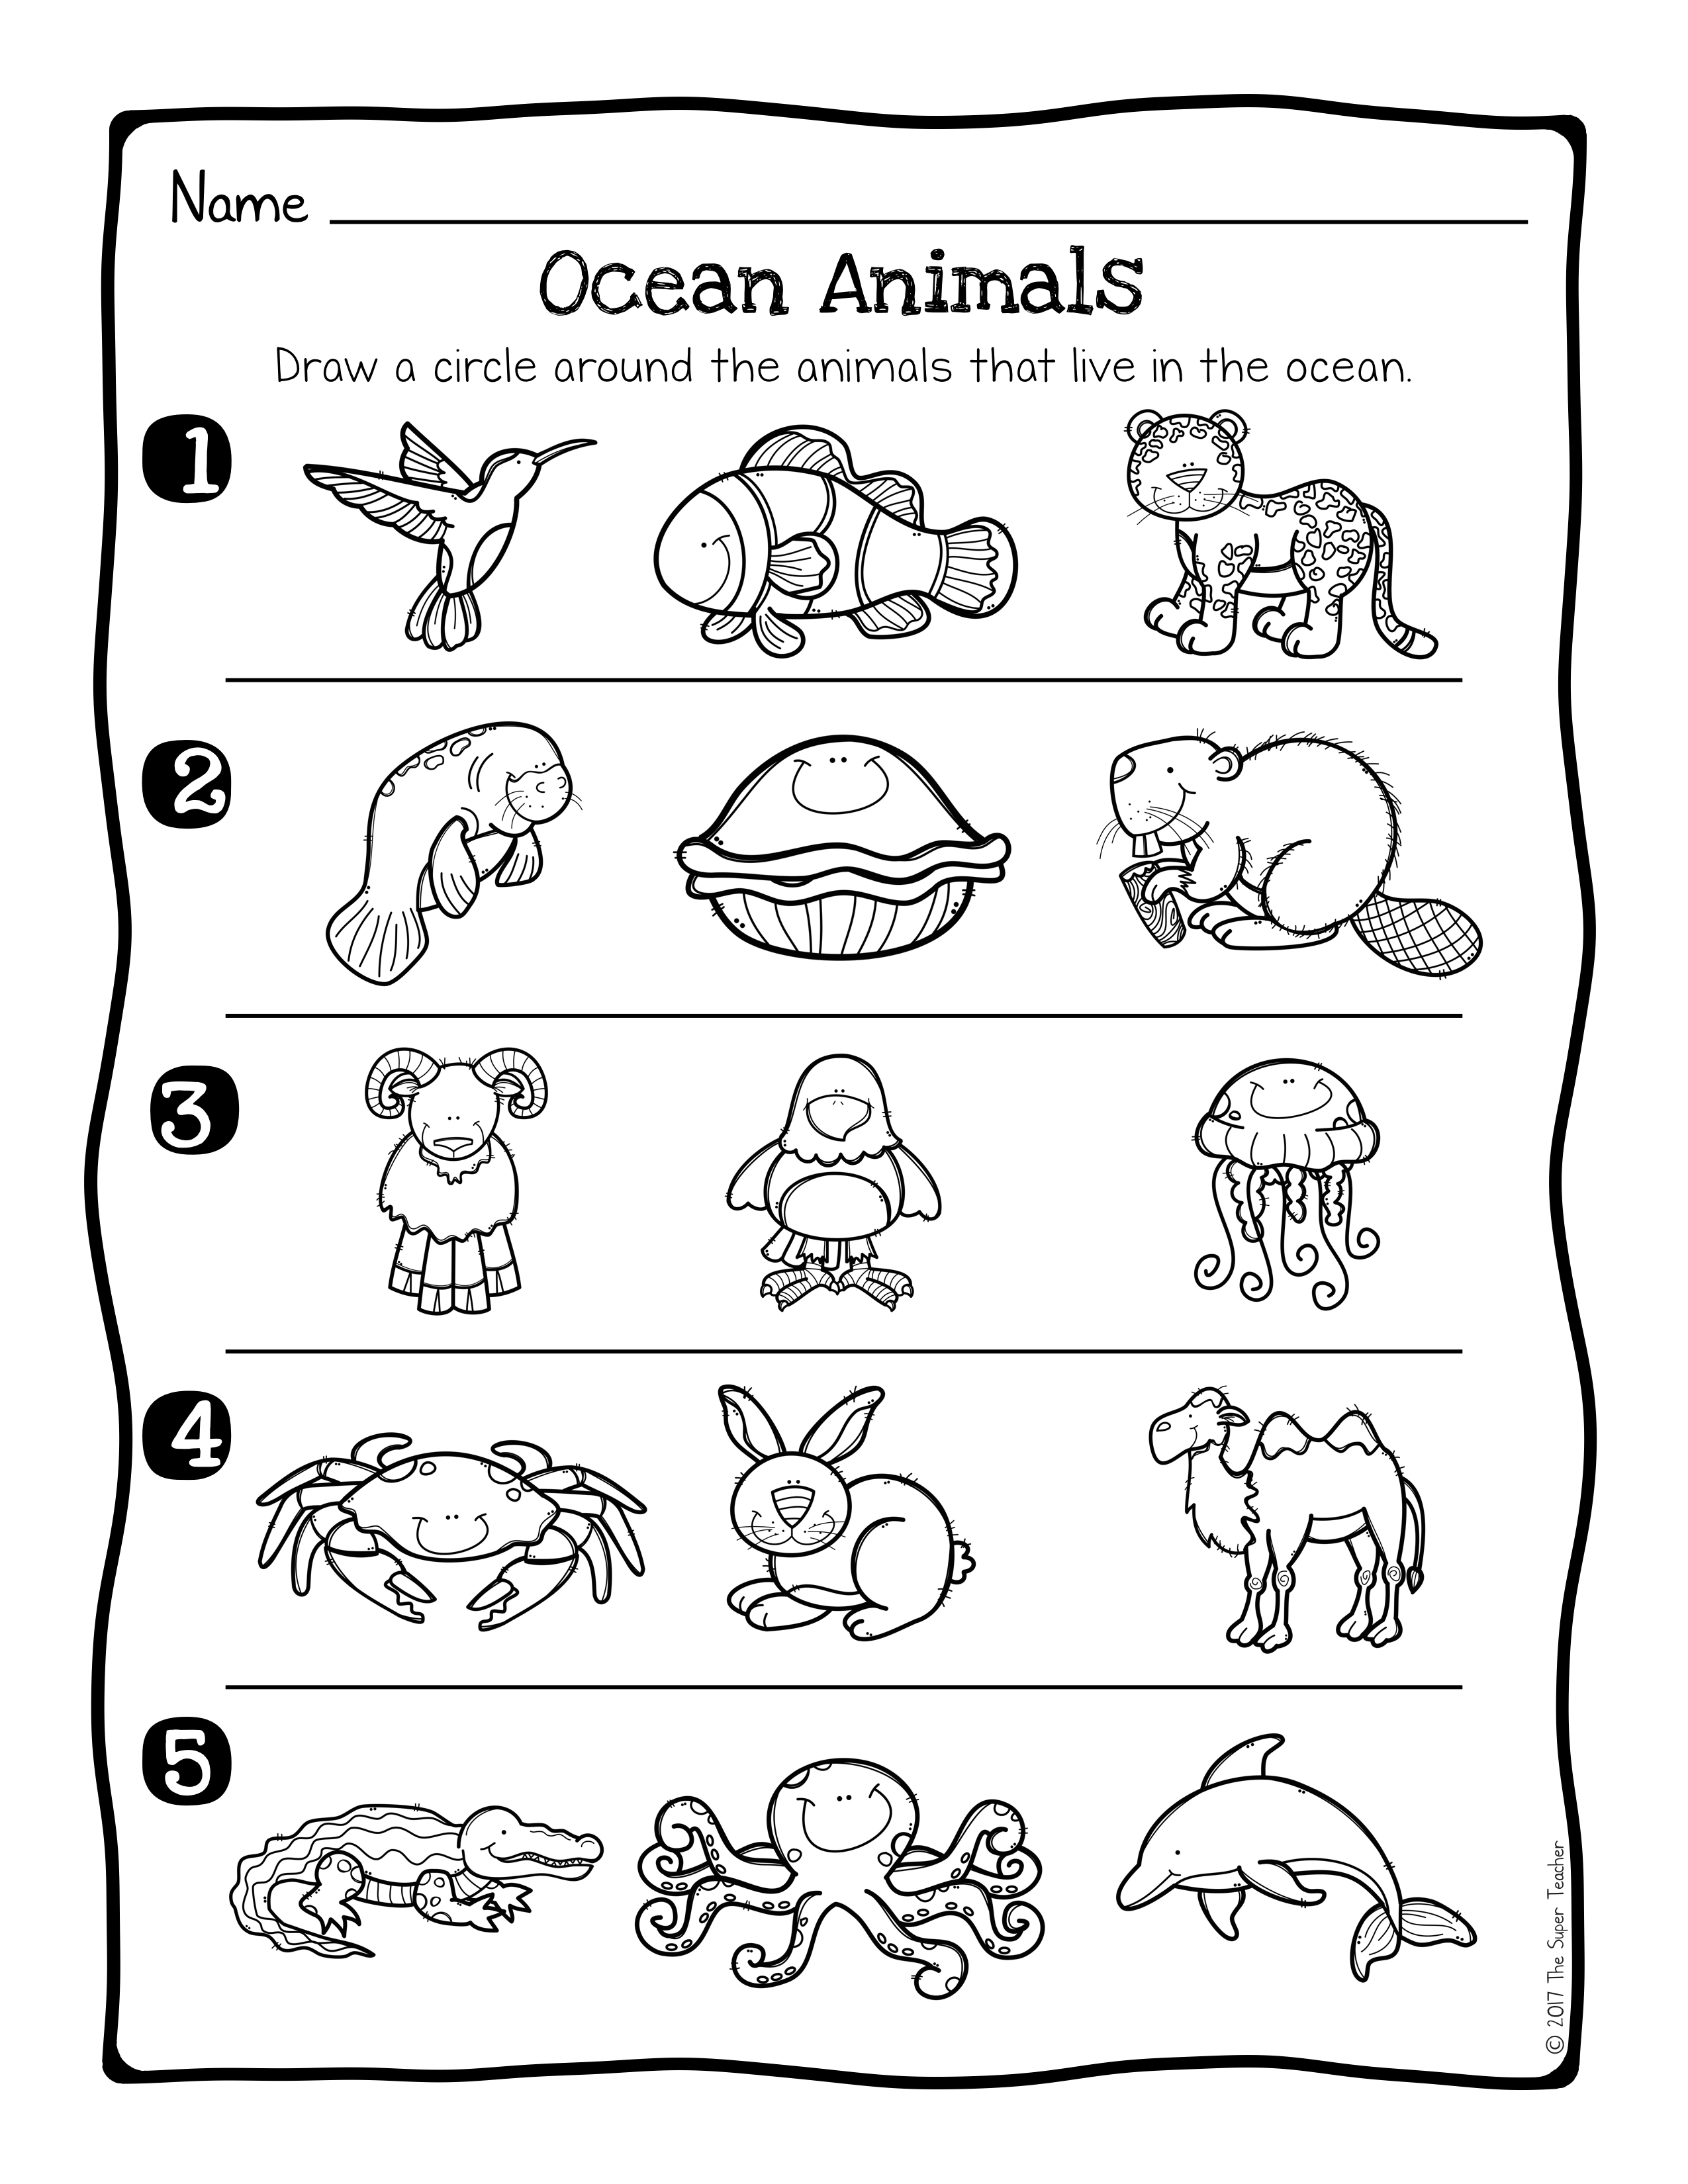 Animal Habitats Science Activity and Worksheets – The Super Teacher [ 3300 x 2550 Pixel ]